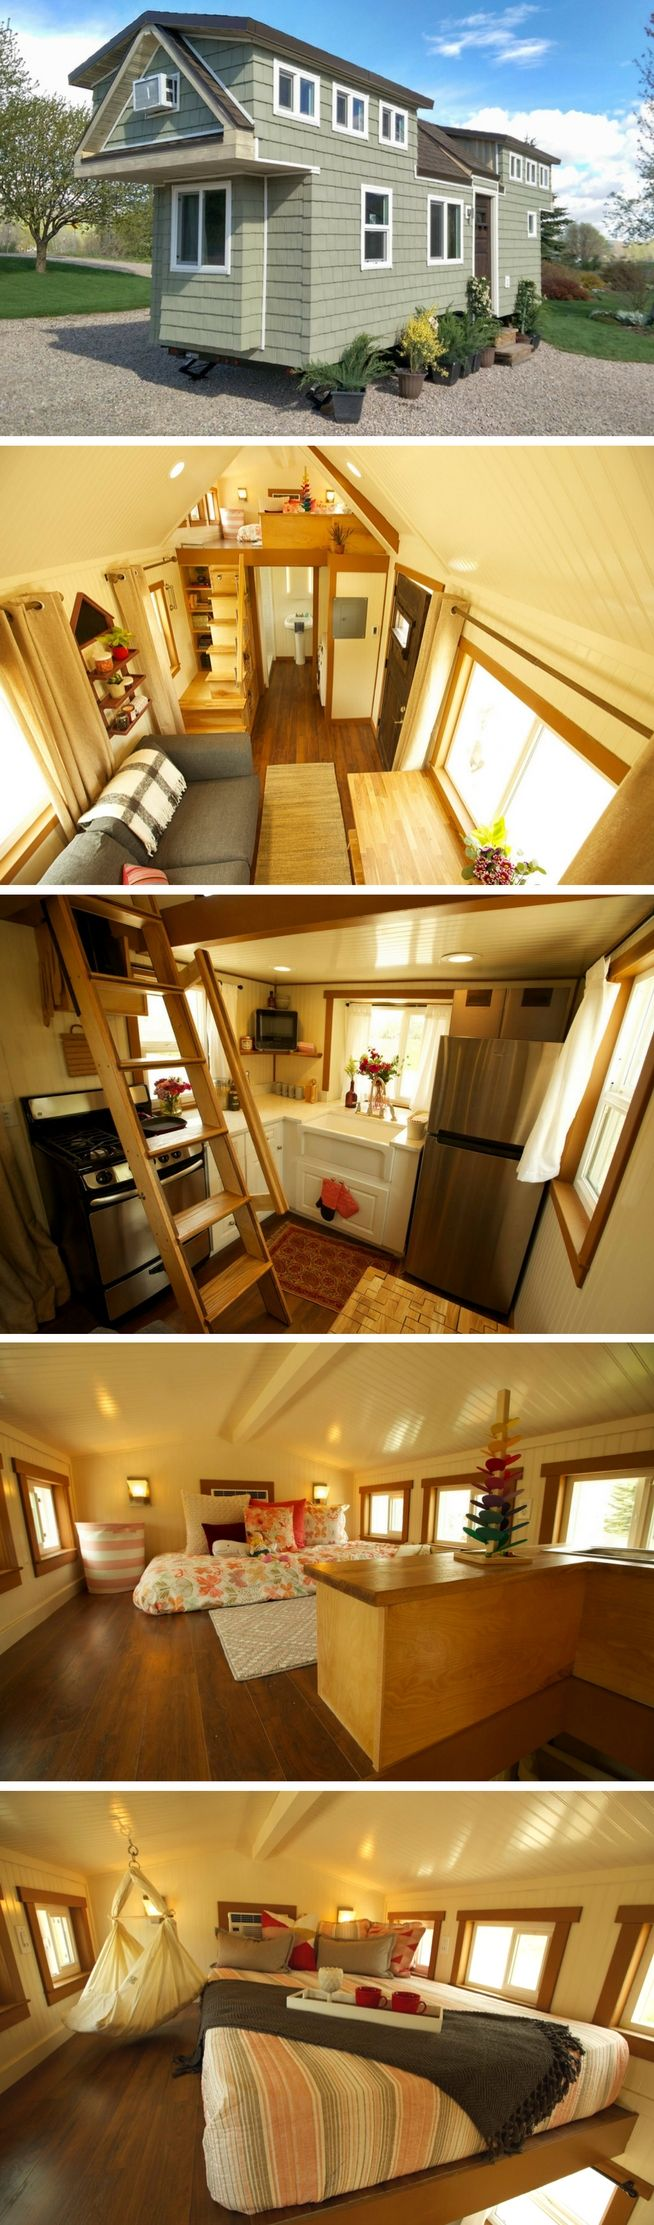 A Beautiful 200 Sq Ft Tiny House On Wheels Built For Family Of 4